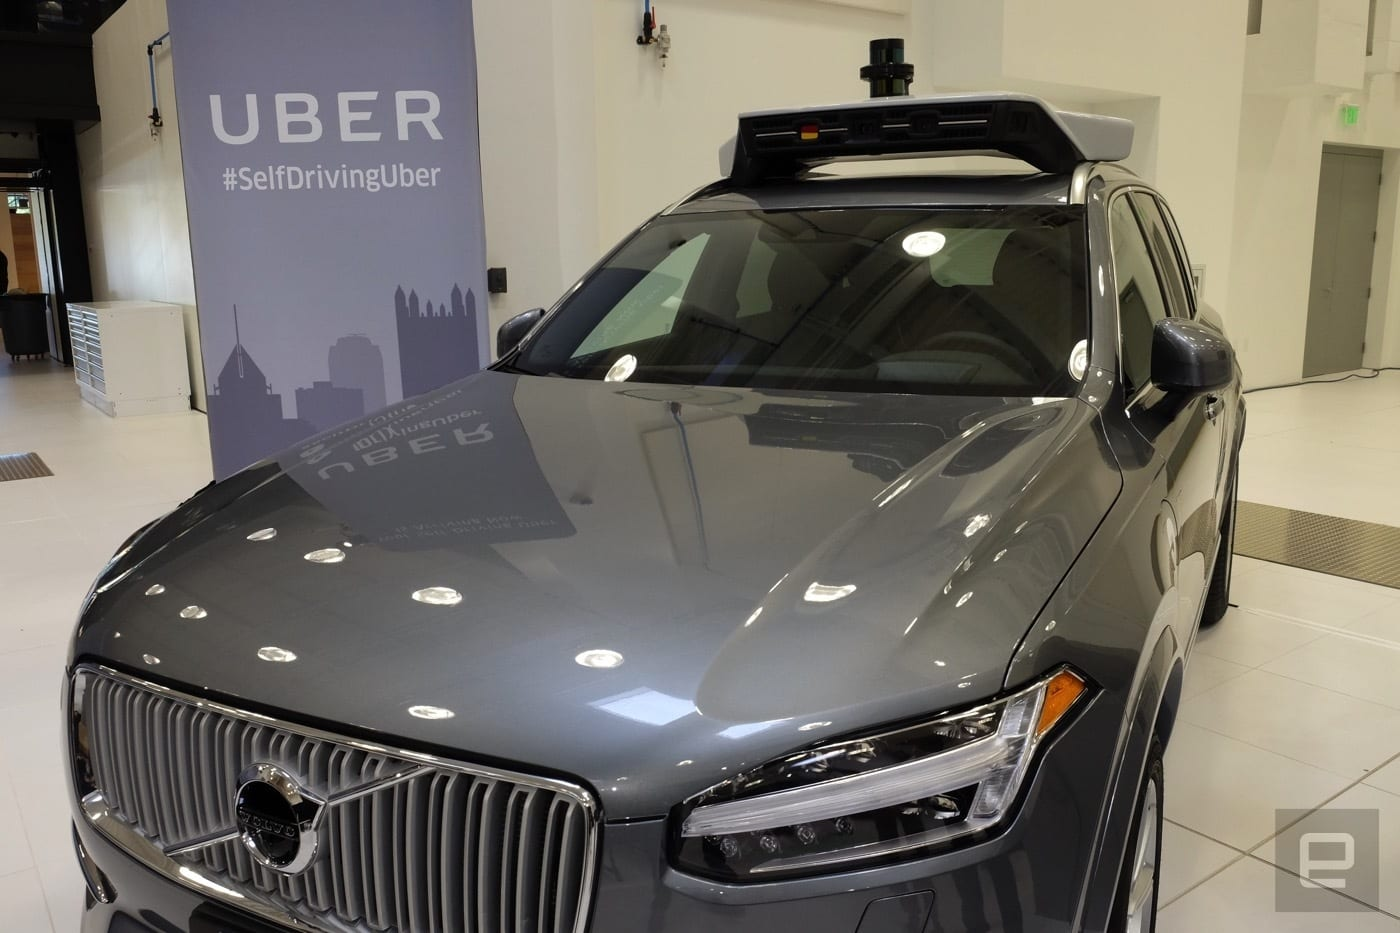 Uber Announces Plans to Buy 24,000 Self-driving Volvo Cars